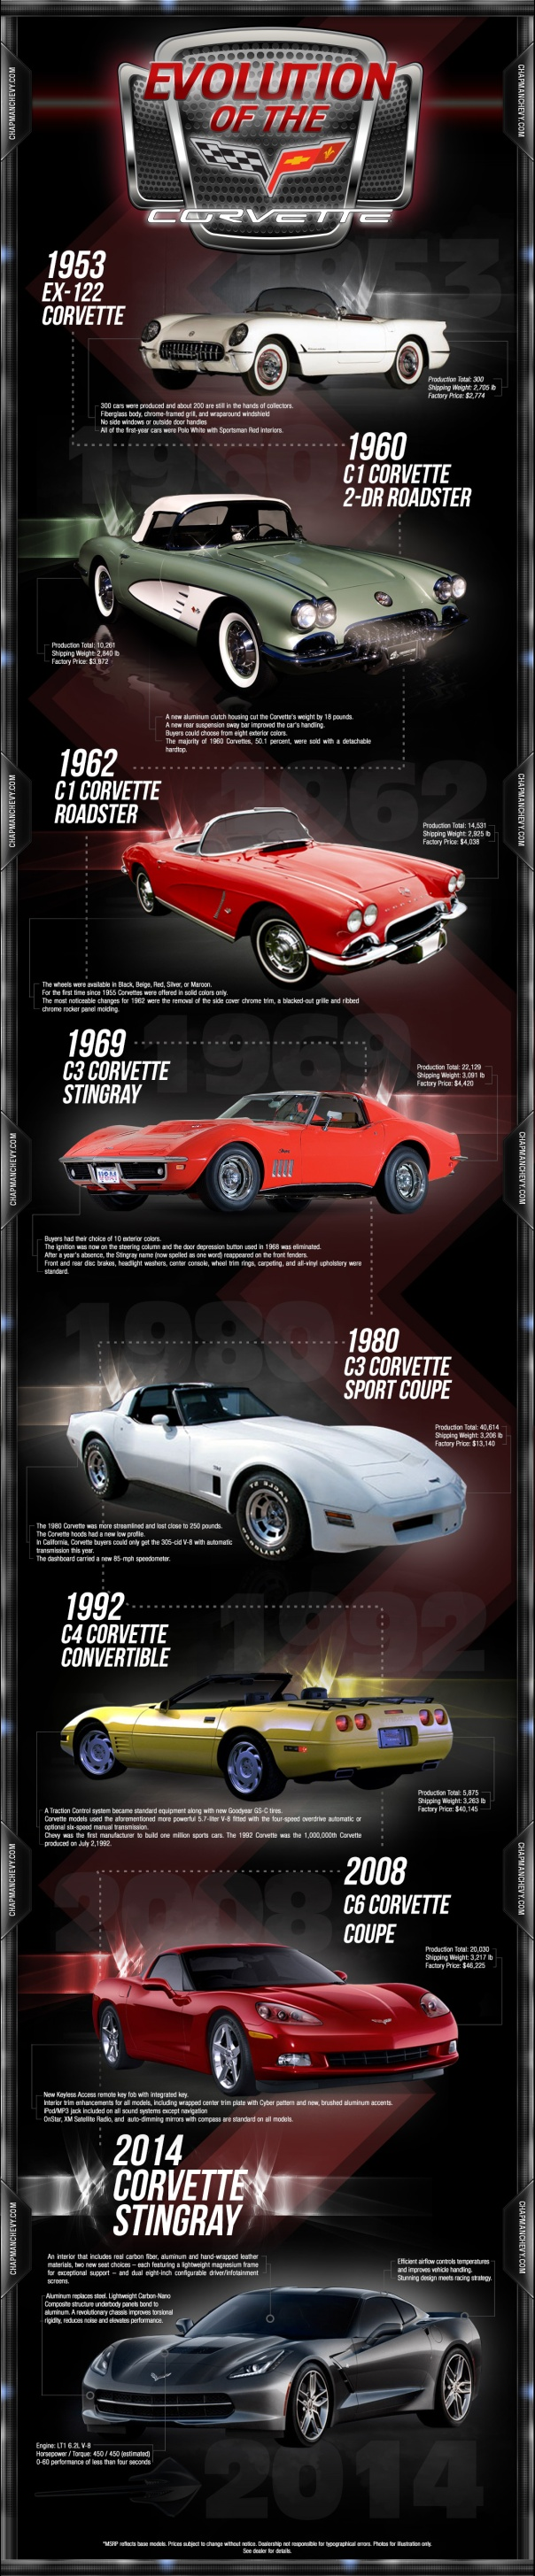 EvolutionoftheCorvette